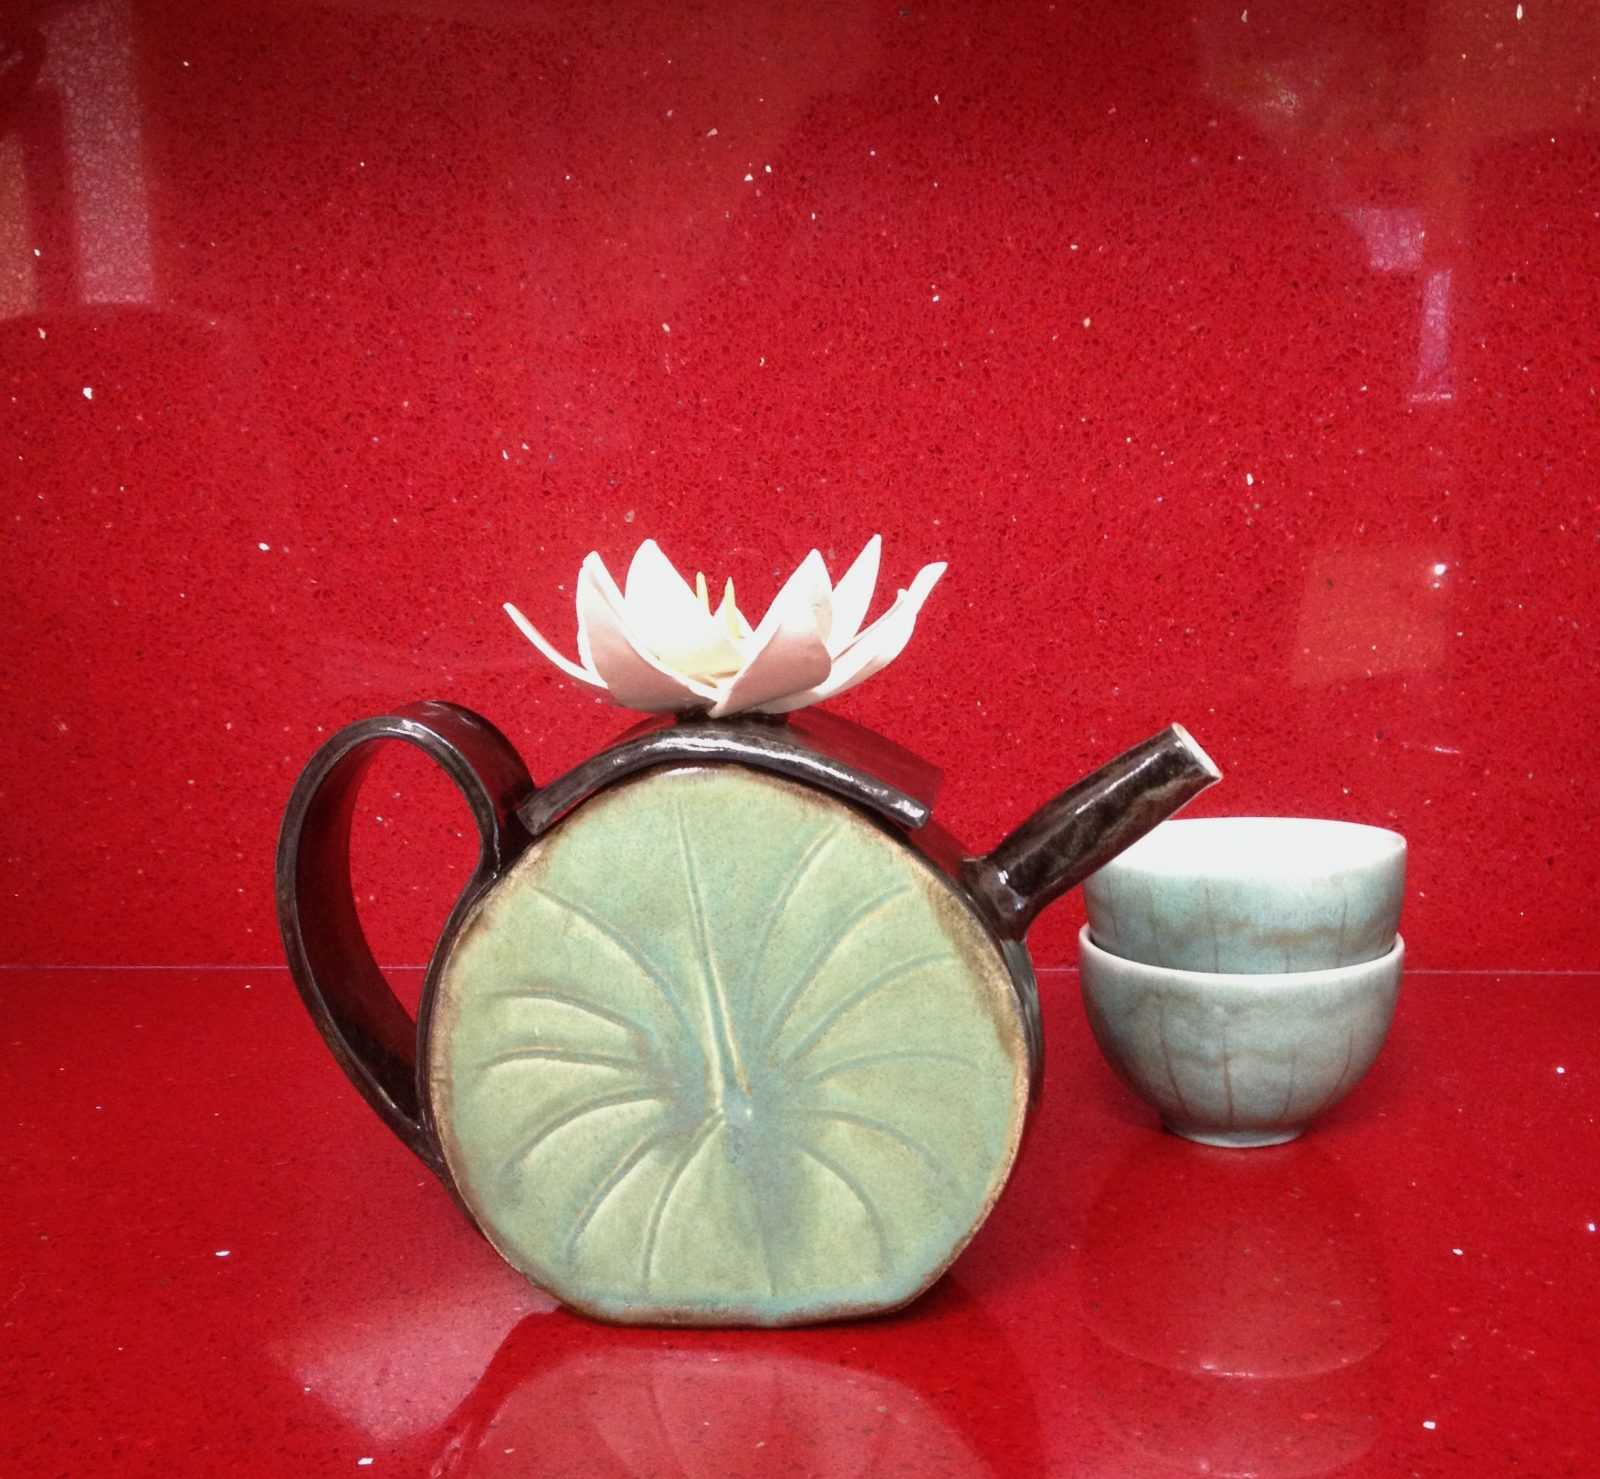 Water lily teapot by Sam Jacobson